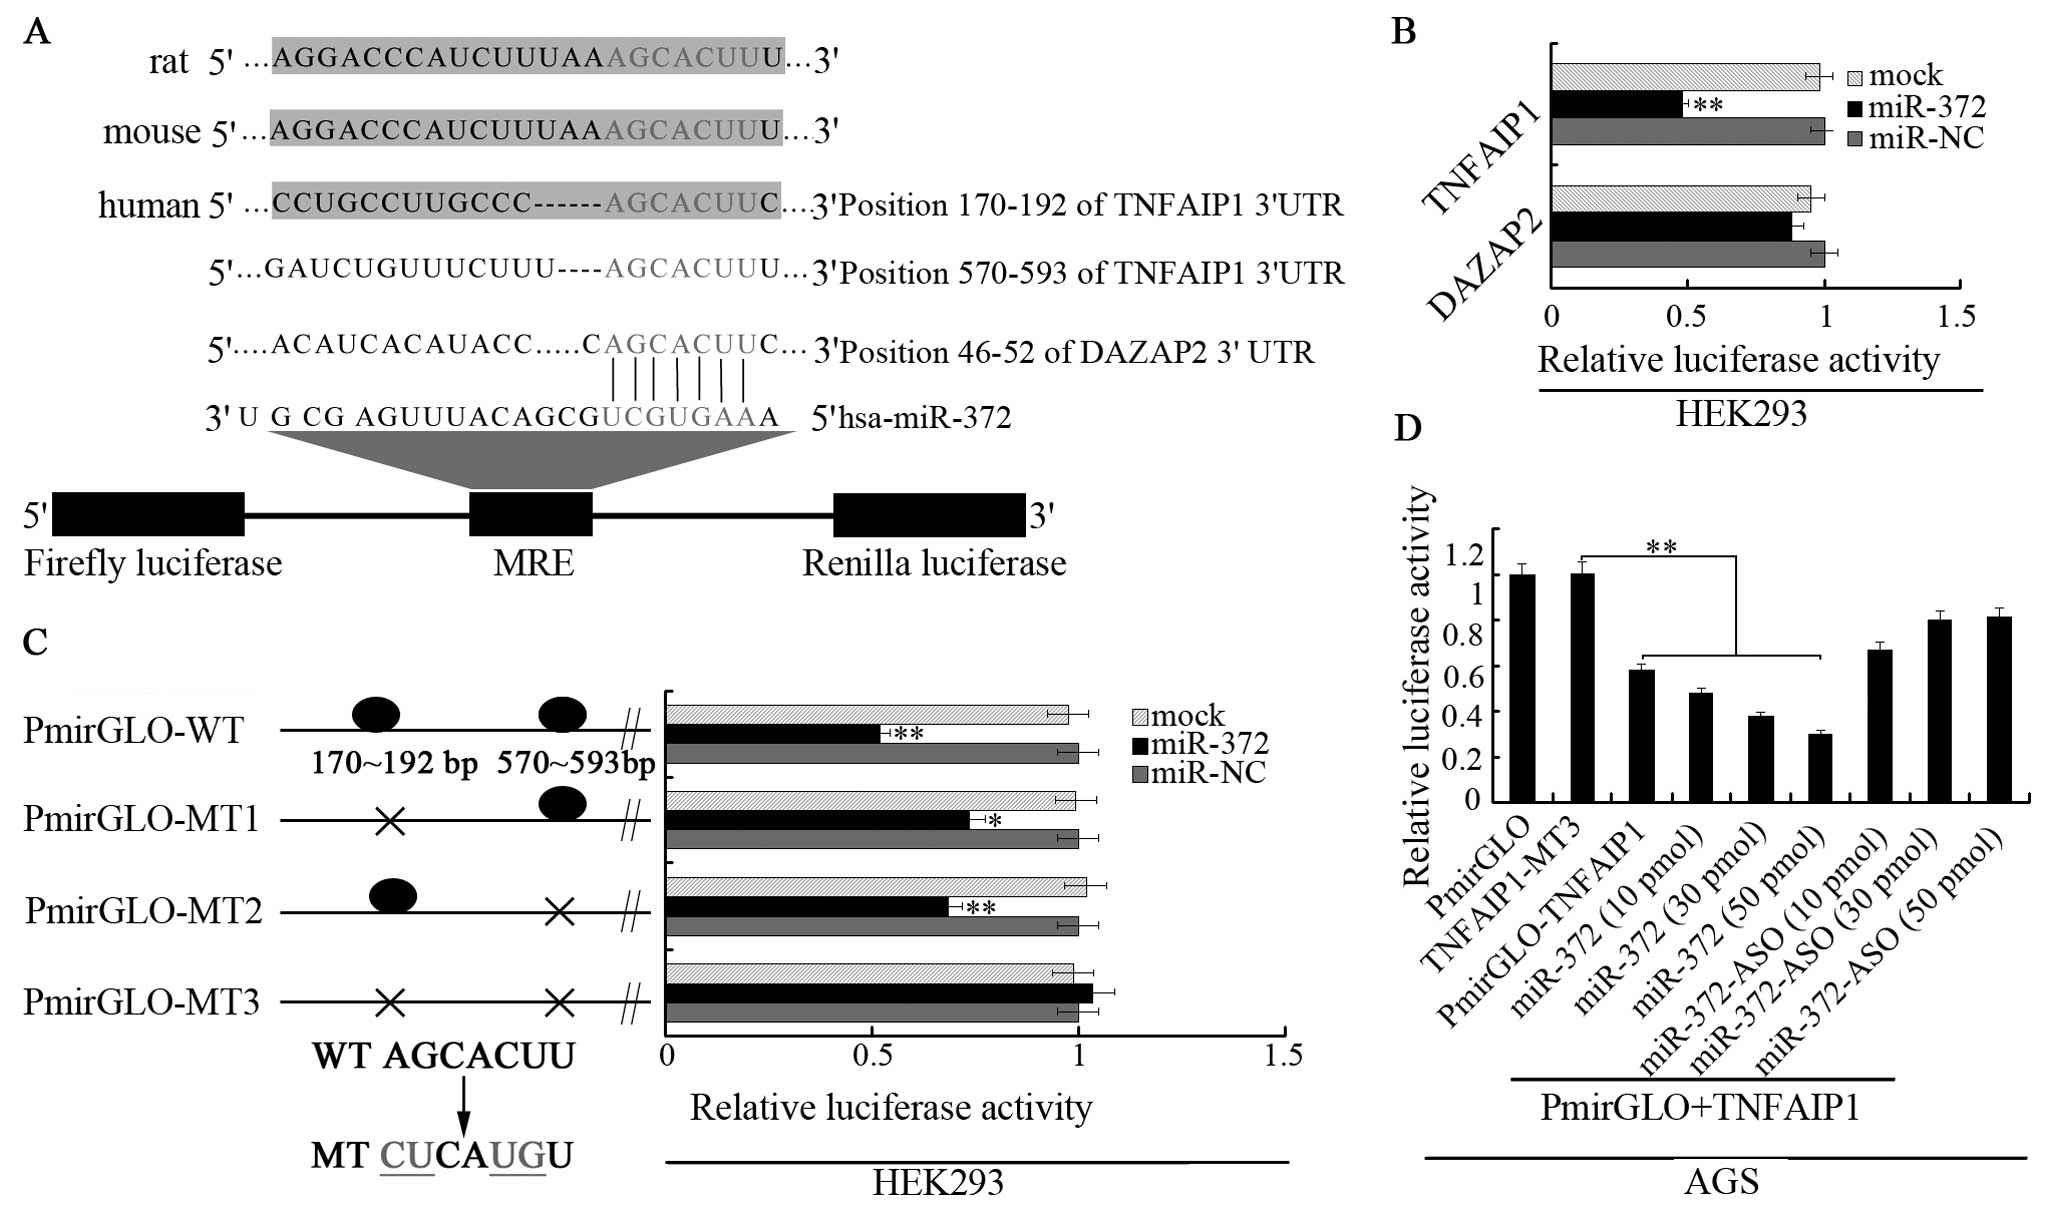 Microrna 372 Maintains Oncogene Characteristics By